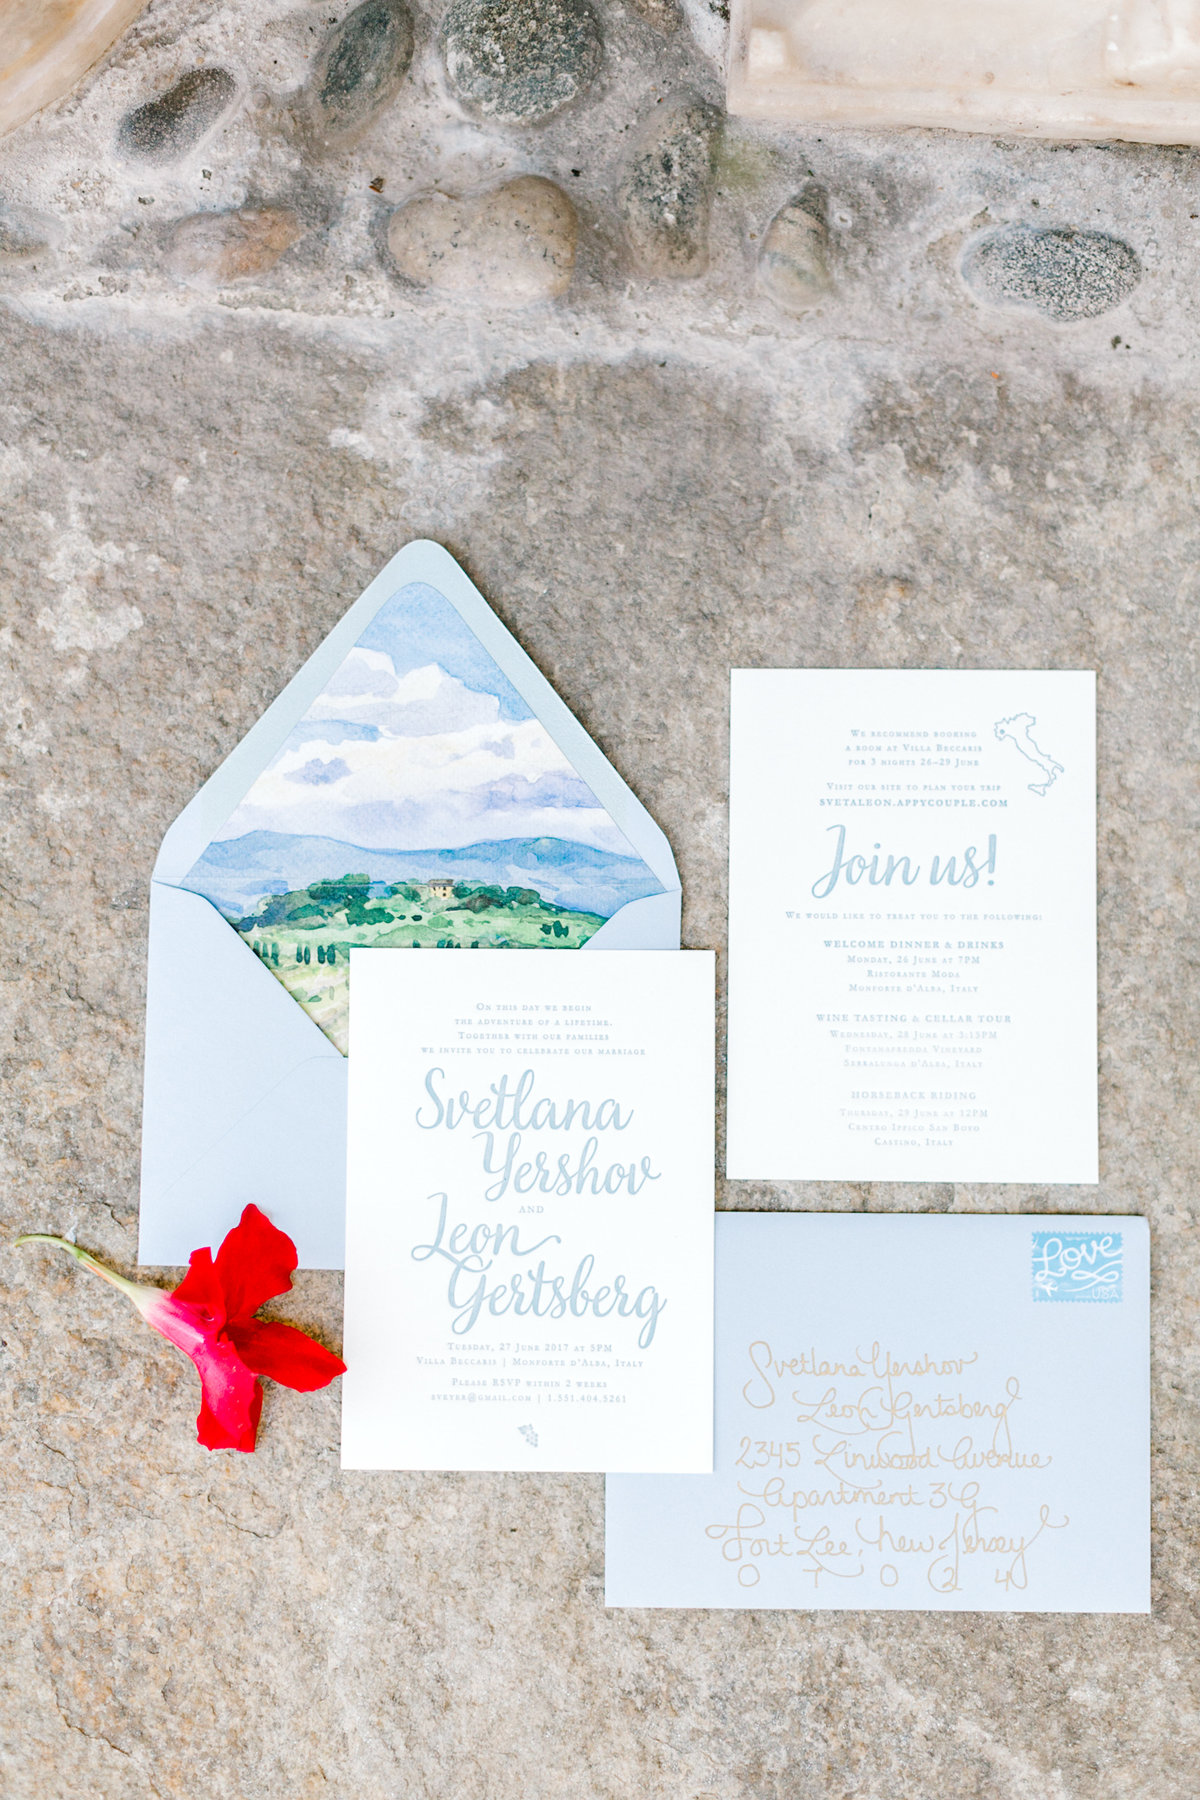 Destination-Vineyard-Italian-Wedding-New-York-Photographer-Jessica-Haley-Photo-04